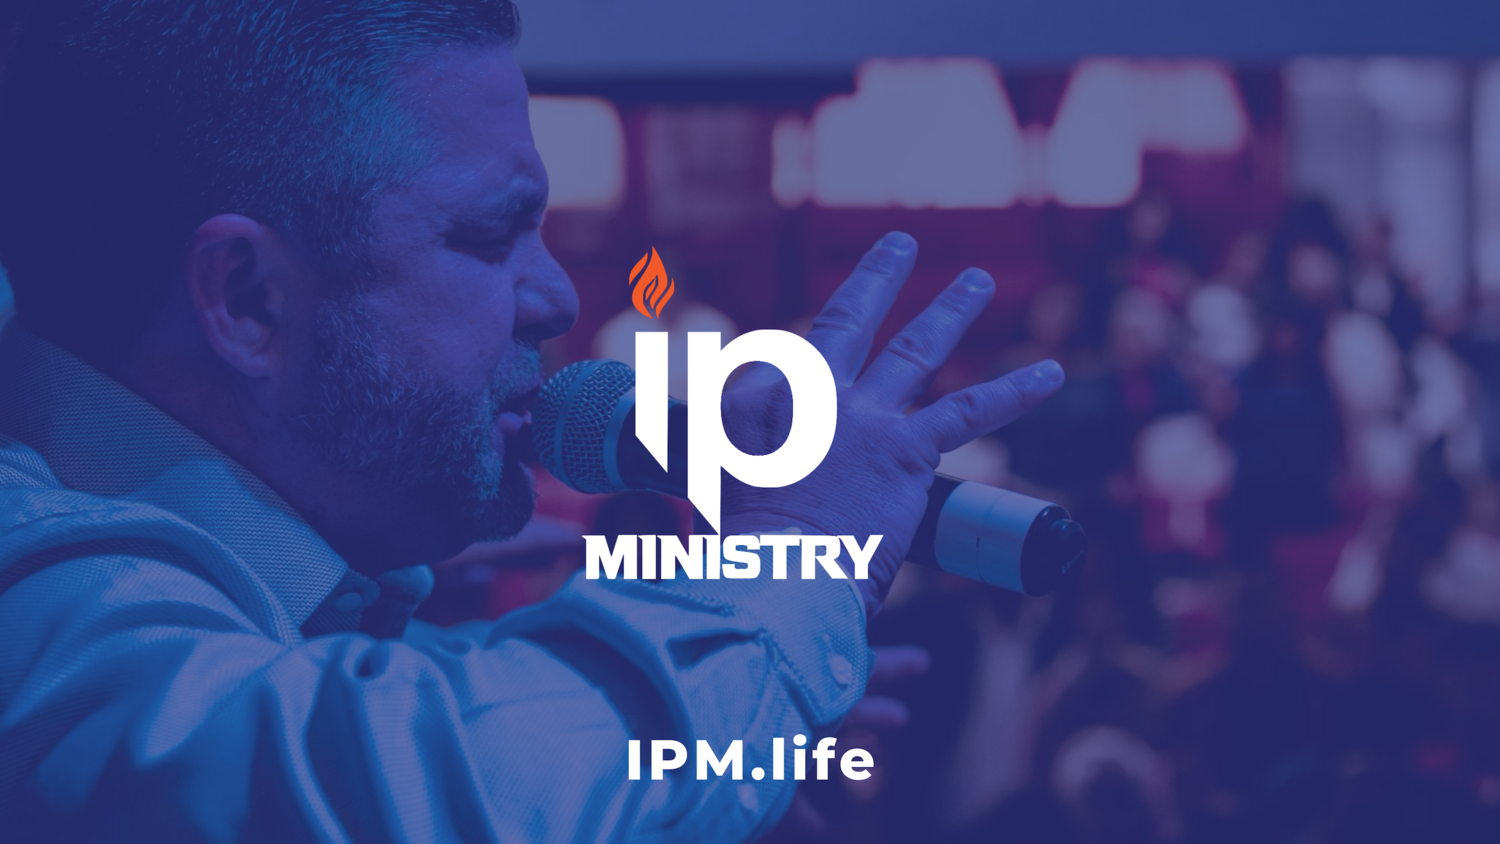 About — Igniting Passion Ministry - Pastor Brian Bowerman